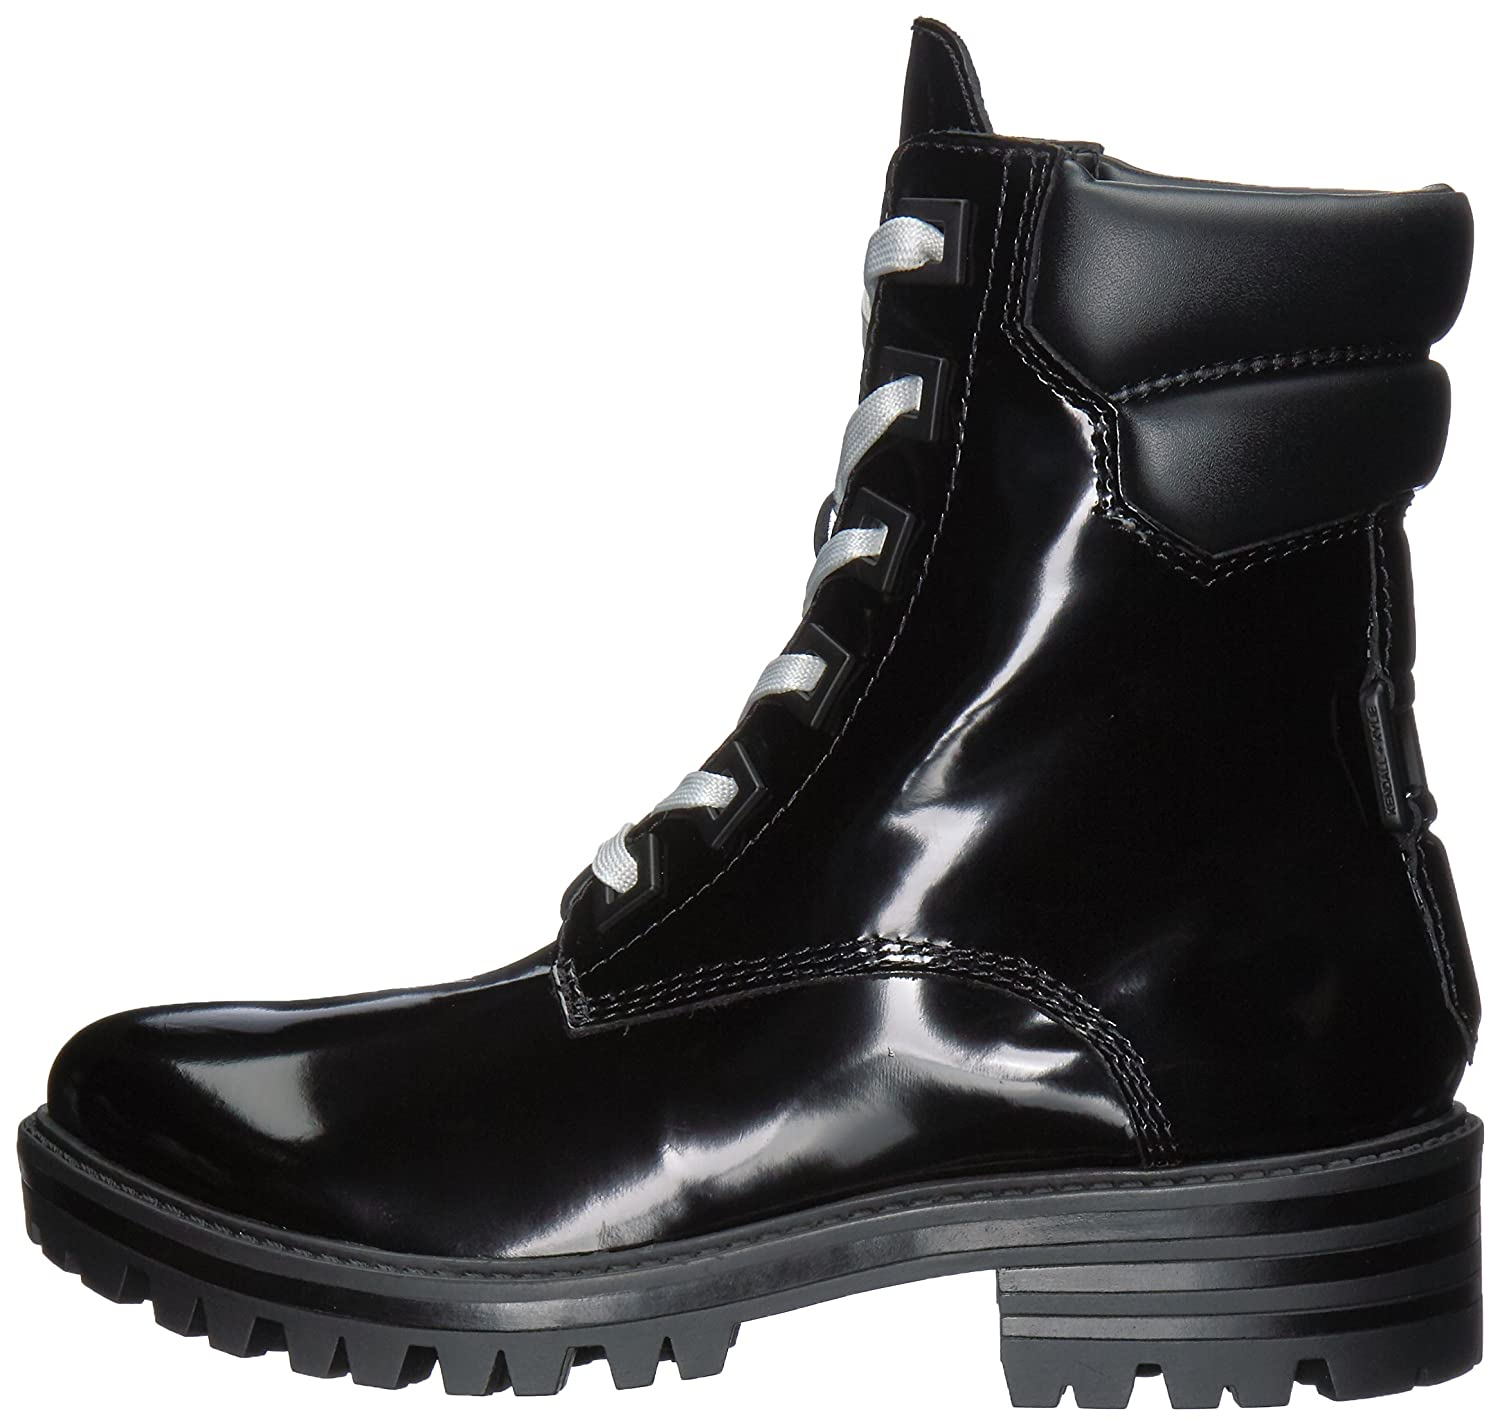 KENDALL + Boot KYLIE Women's East Combat Boot + B0718ZJC5H 7.5 B(M) US|Black 45aa59